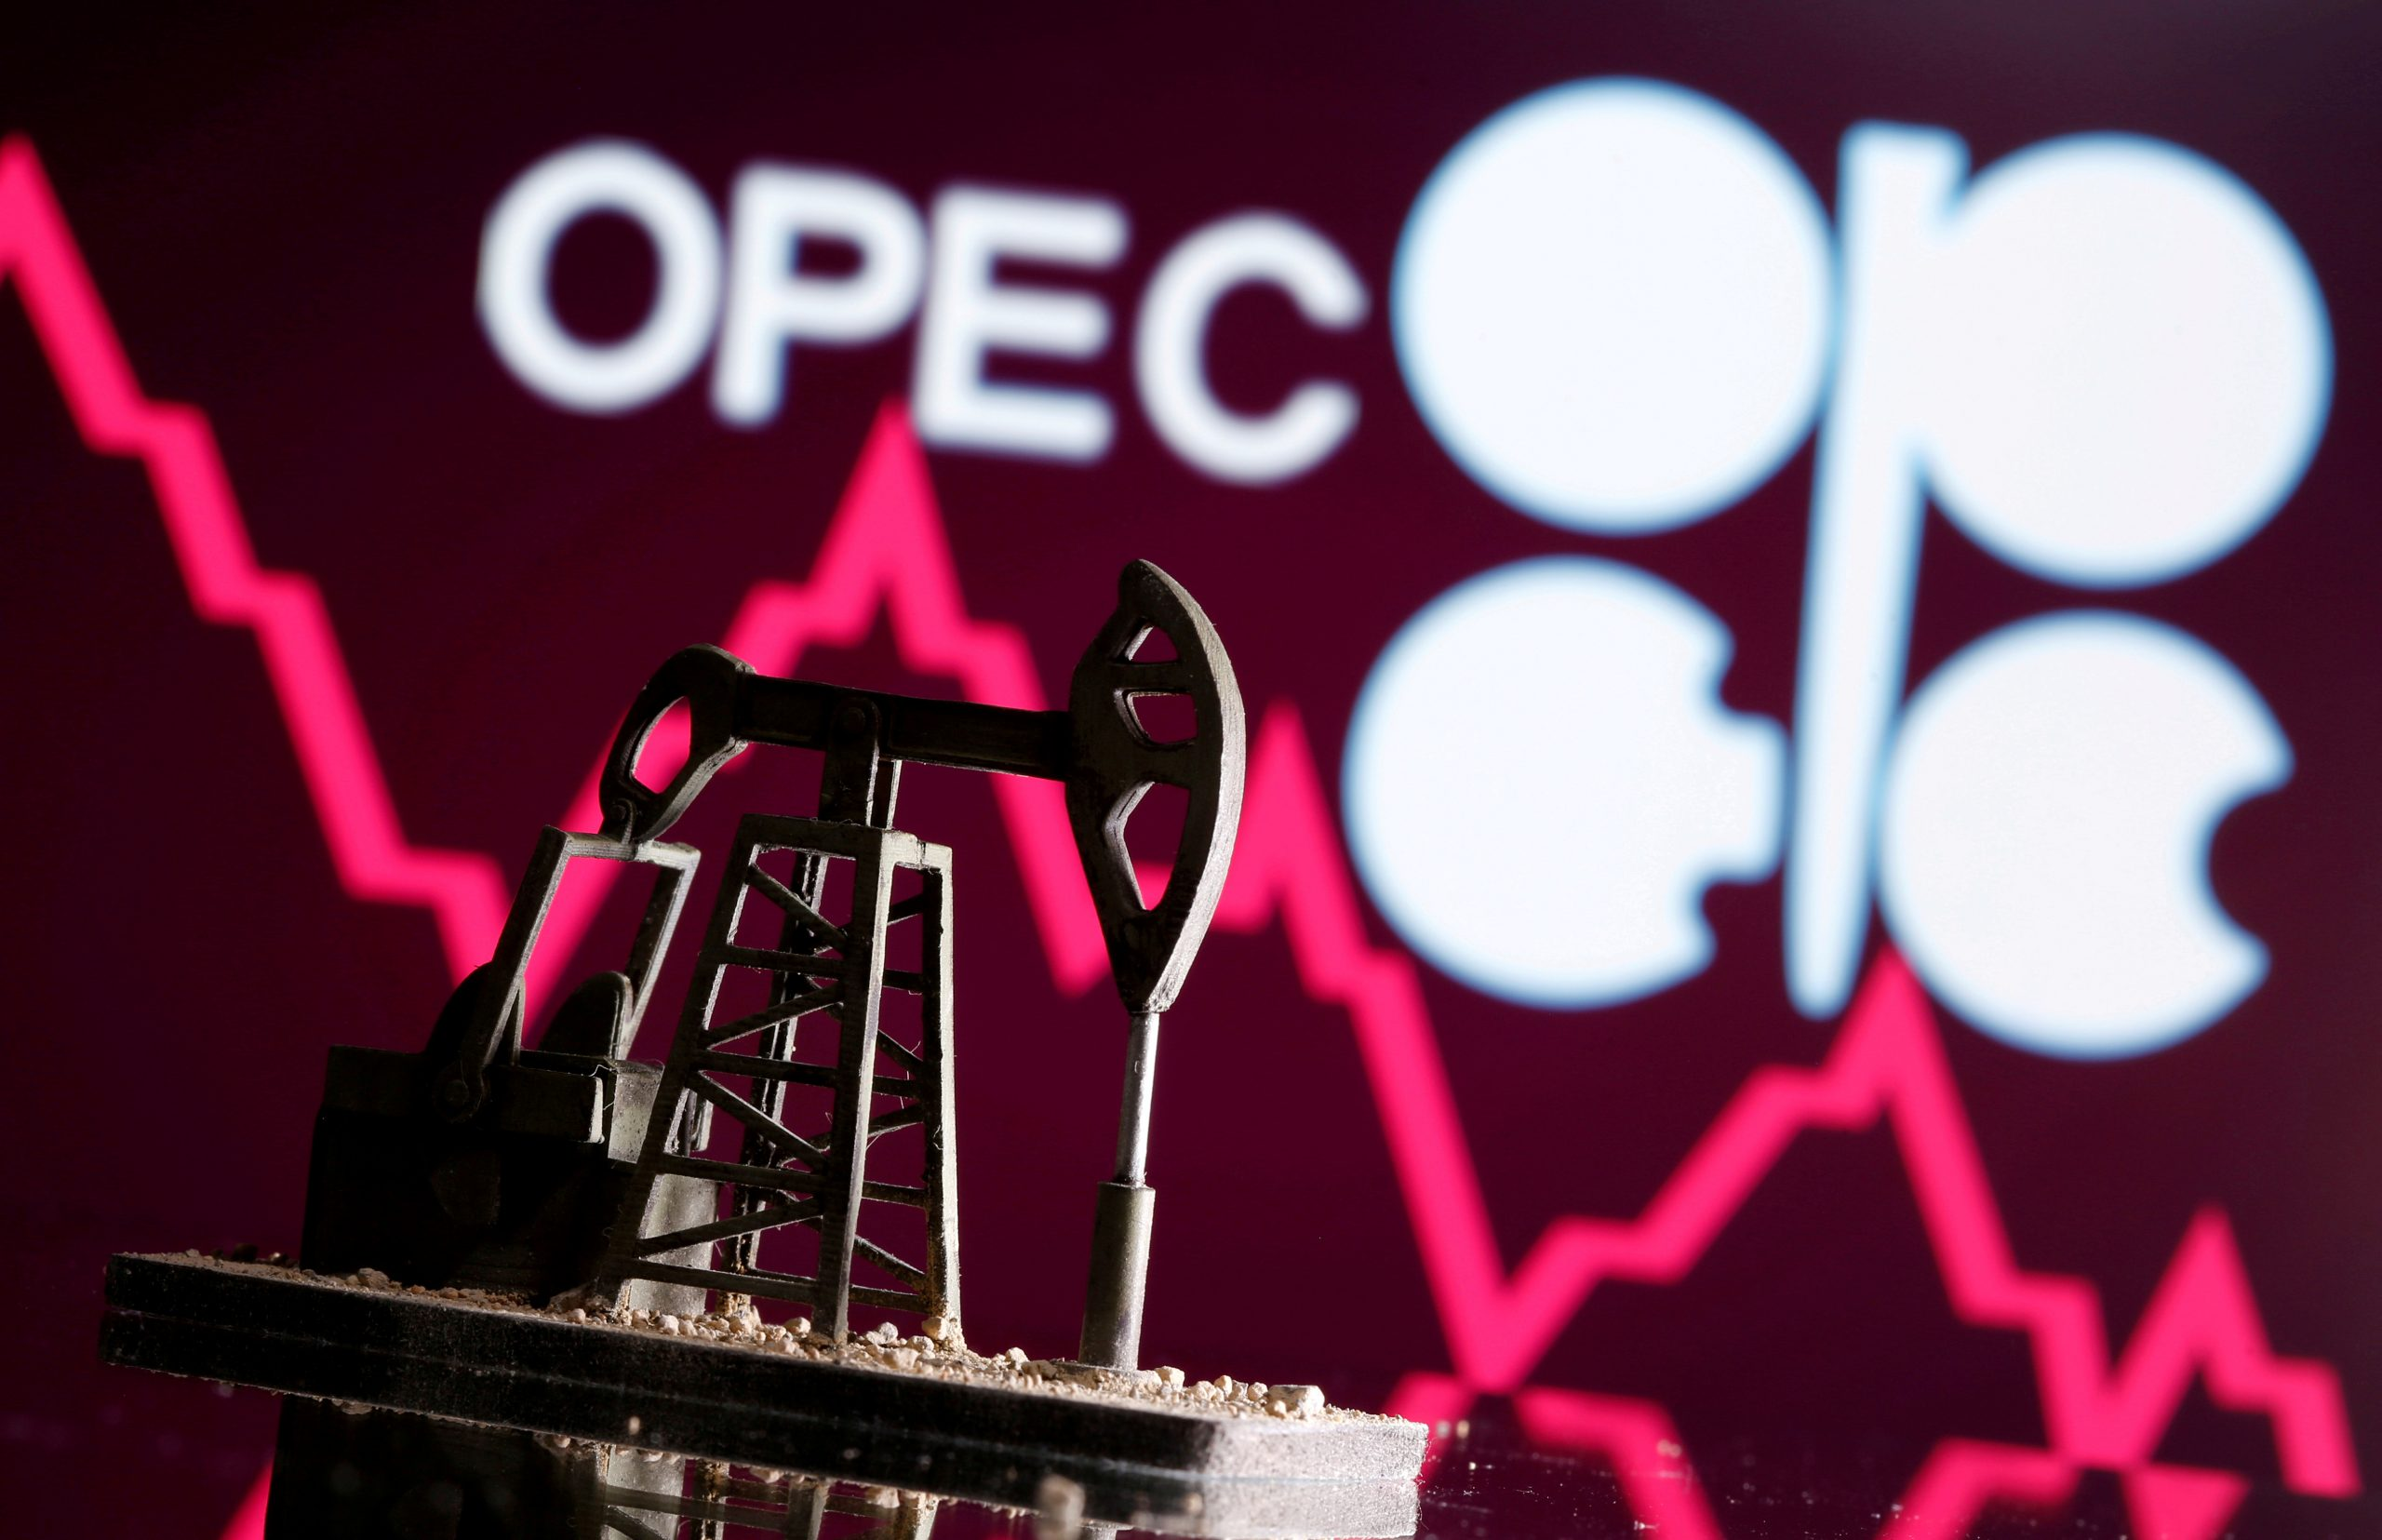 OPEC+ could add 2 million barrels per day of oil to market by December, says source